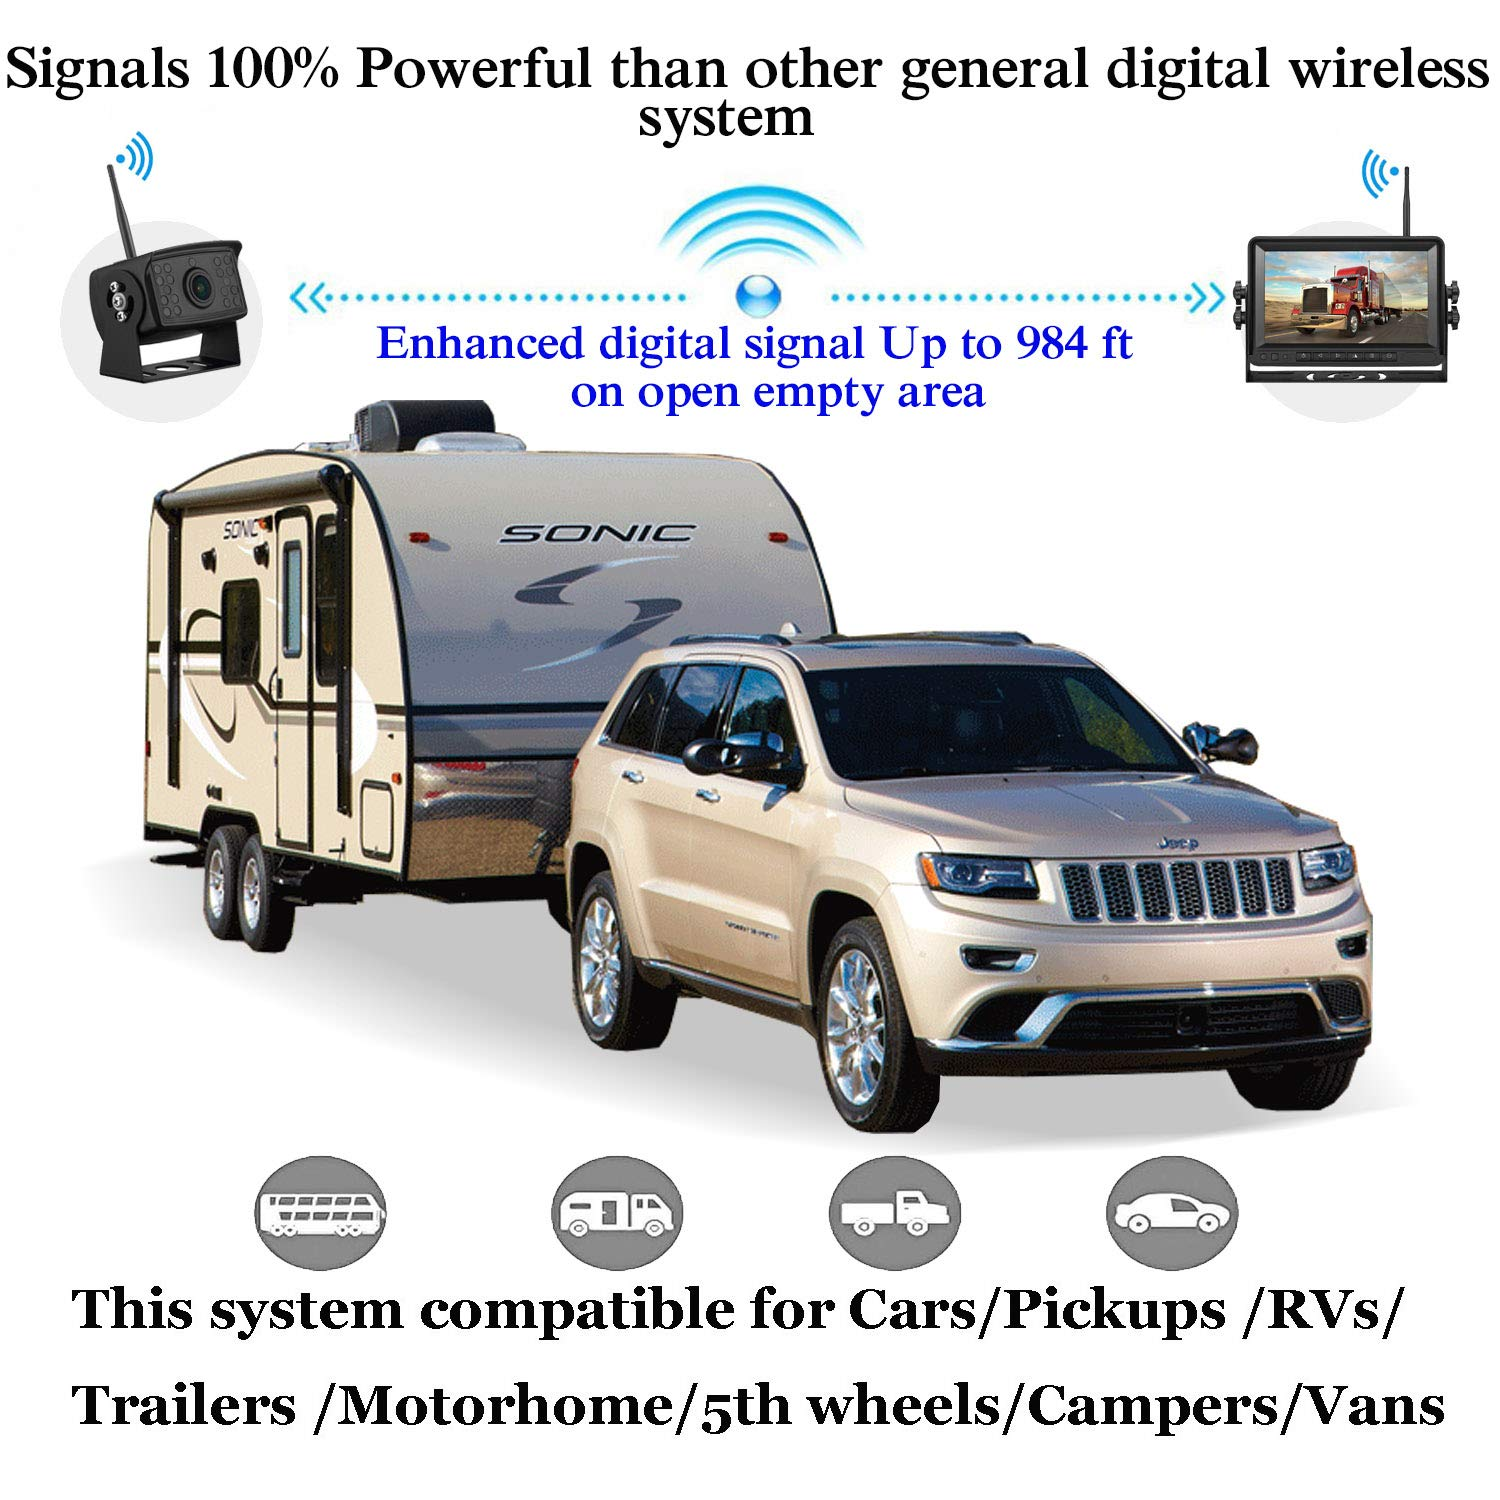 Amtifo FHD 1080P Digital Wireless Backup Camera and 7 Monitor Kit For RV Truck Trailer Camper Bus,High-Speed Observation System Adjustable Rear Front View, Guide Lines ON Off, IP69K Waterproof